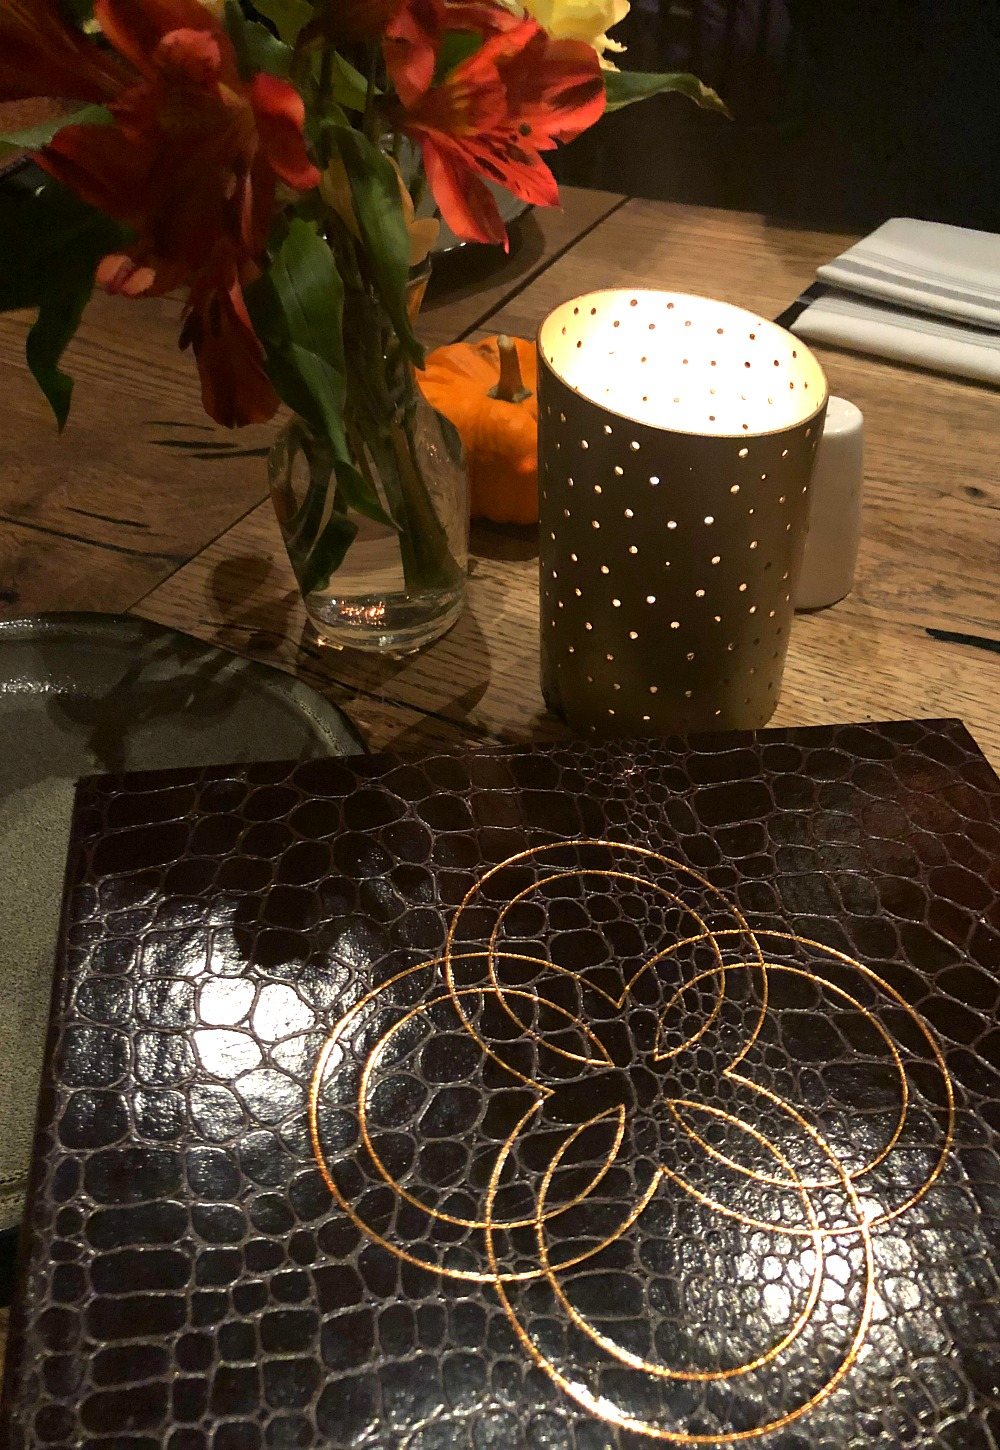 Rhinebeck Travel Guide I New York I DreaminLace.com #Travel #NewYork #Catskills